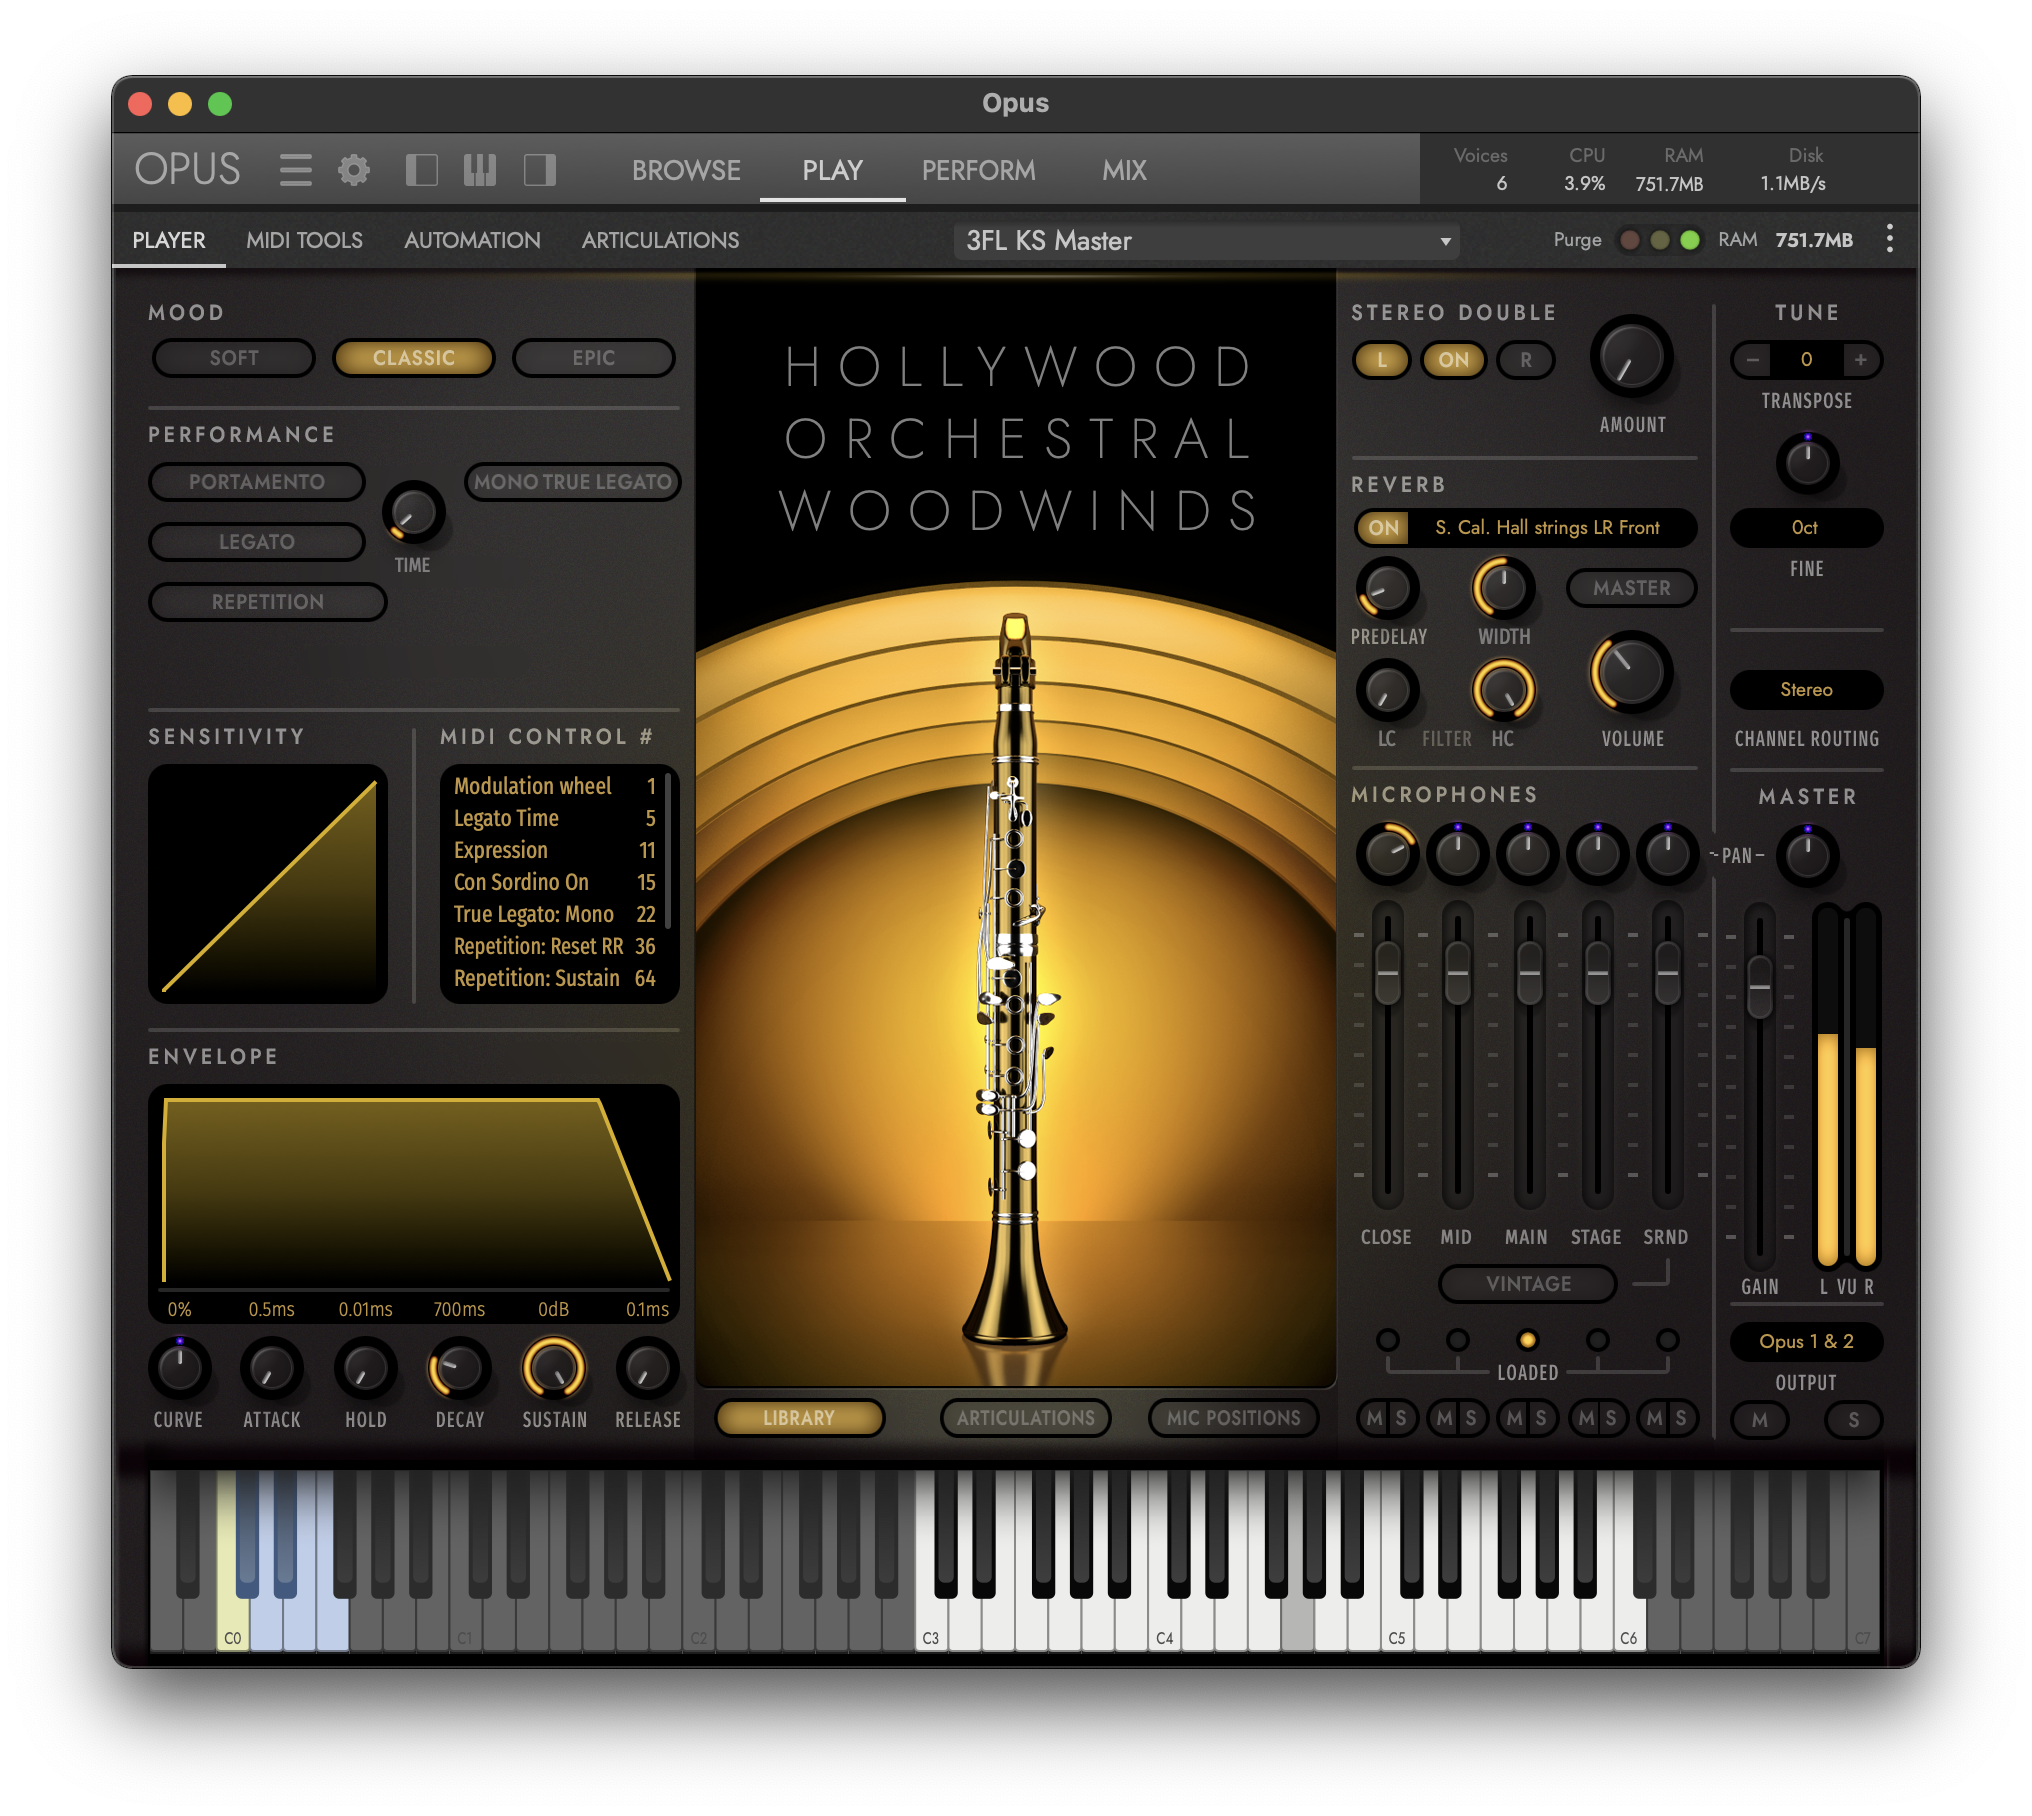 Hollywood Orchestra Opus Edition Interface - Hollywood Orchestral Woodwinds - Soft